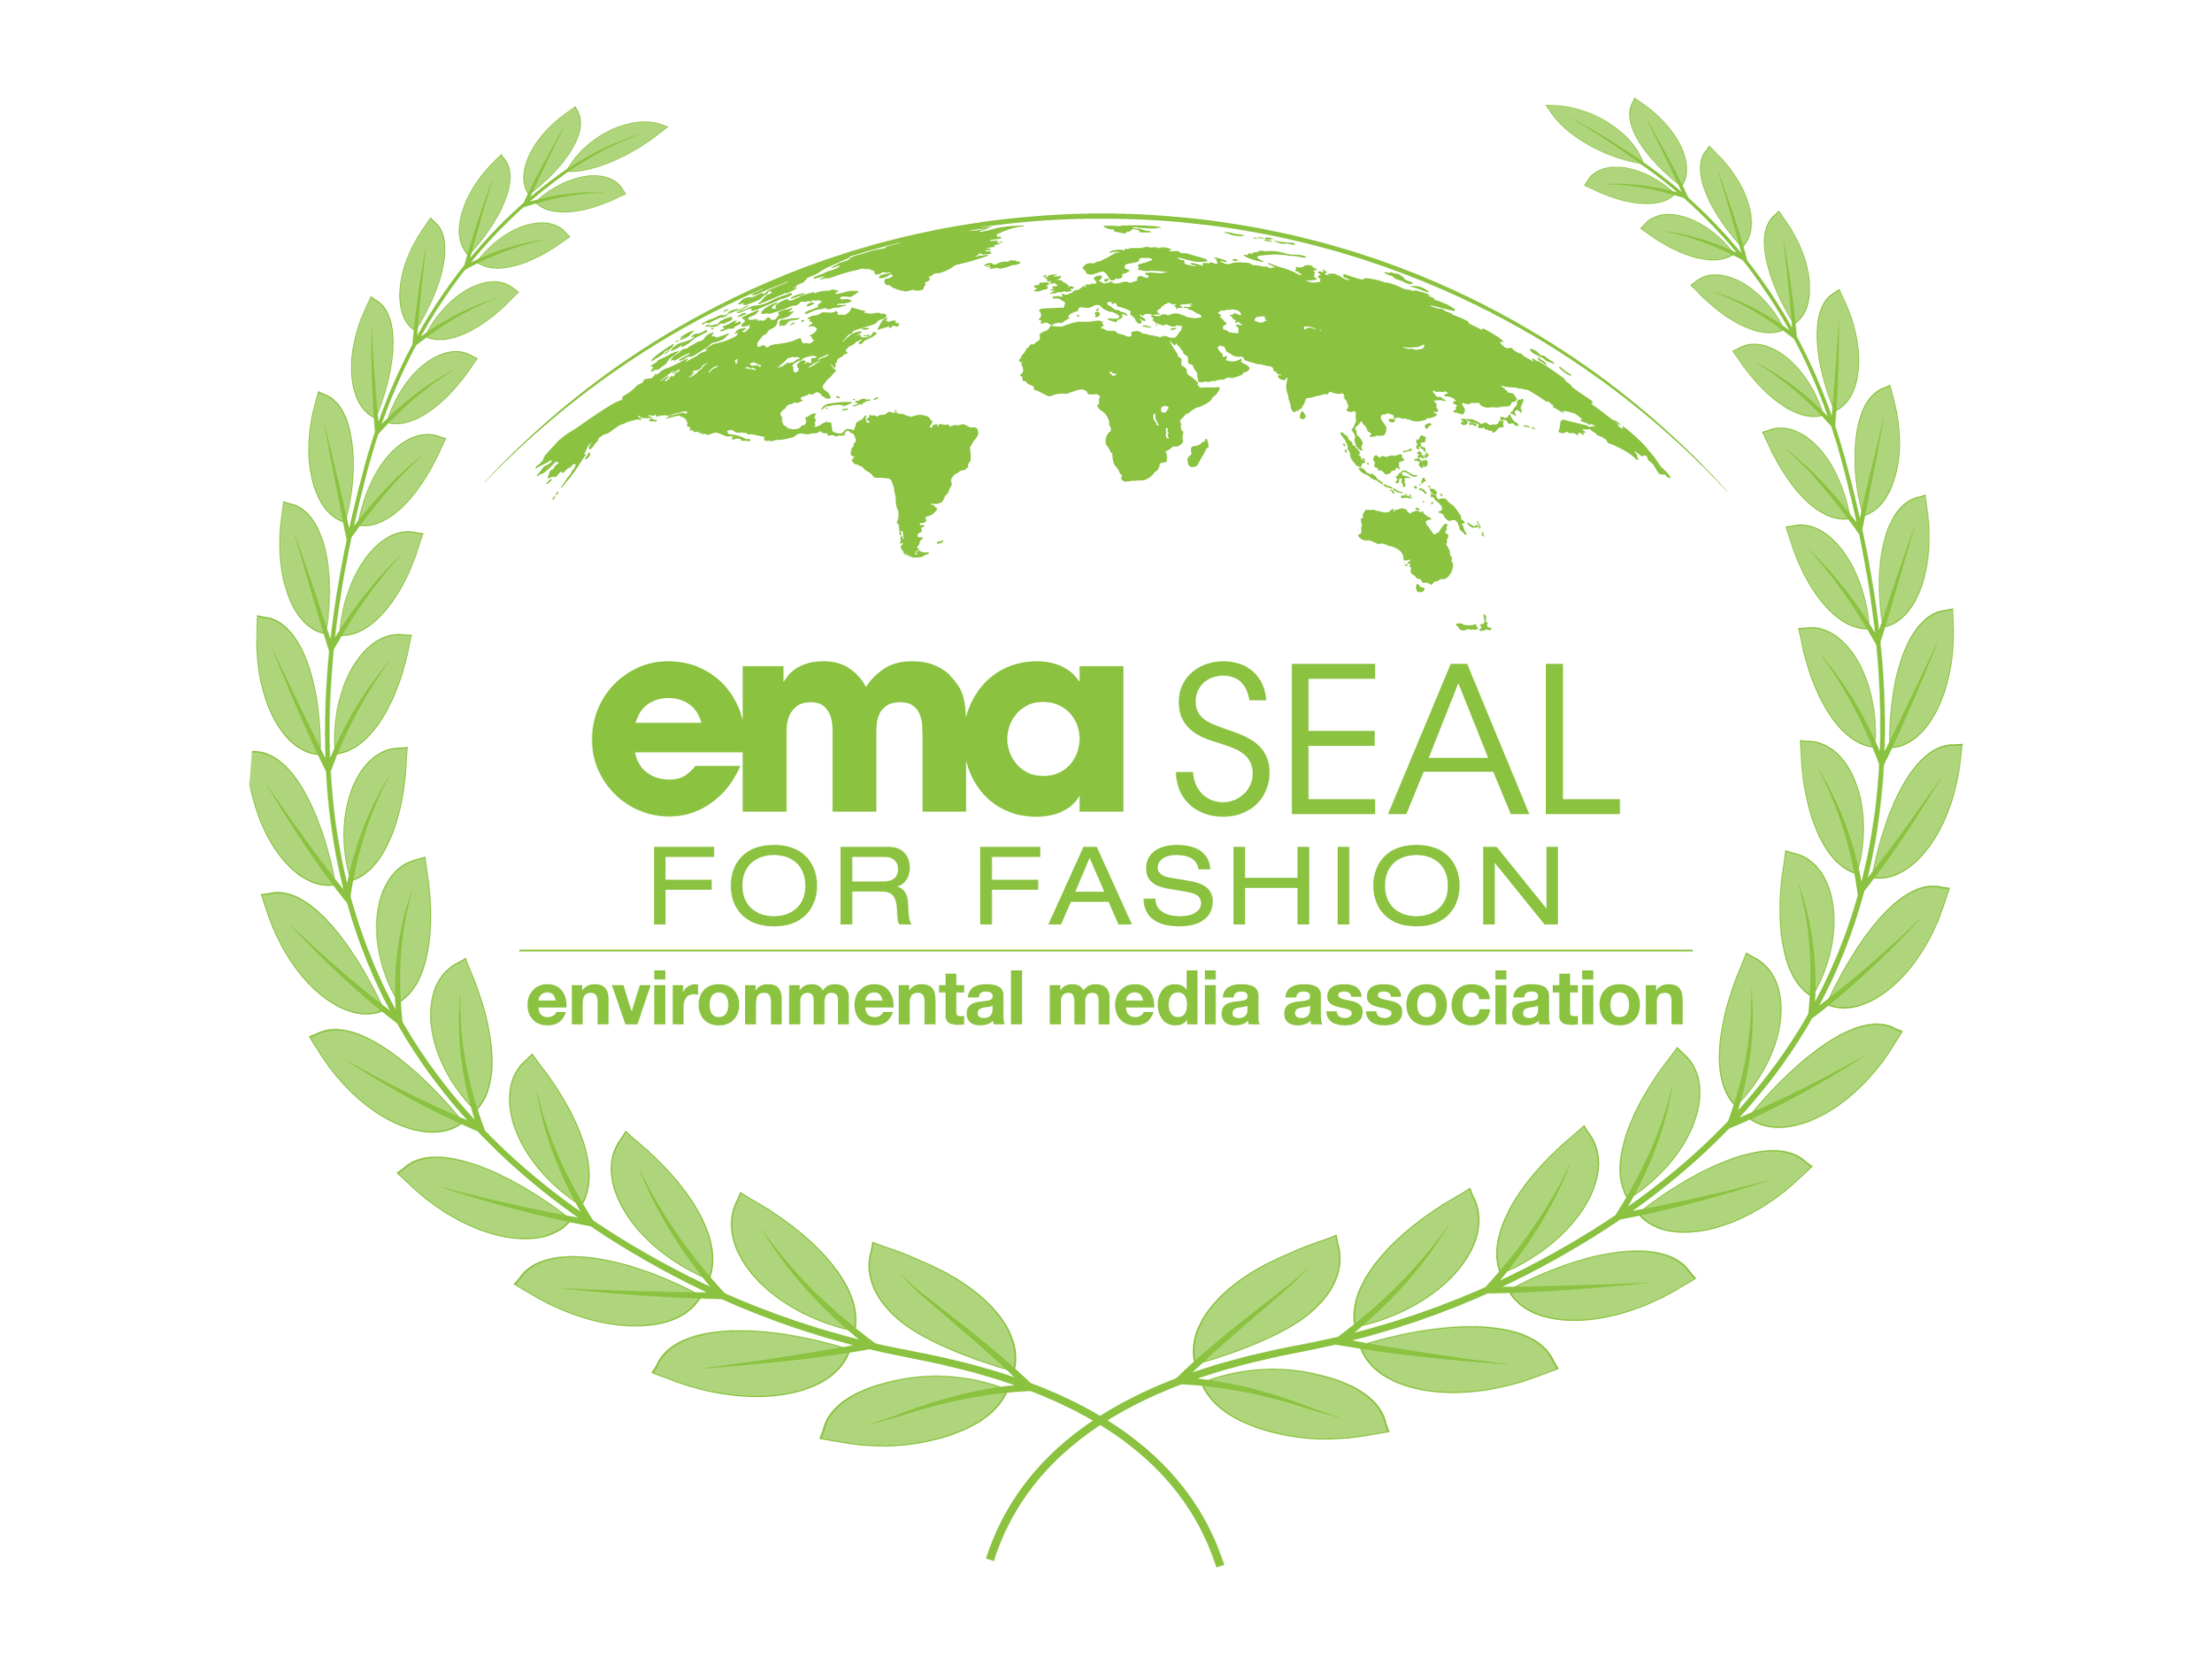 ema_seal_for_fashion-grn.png